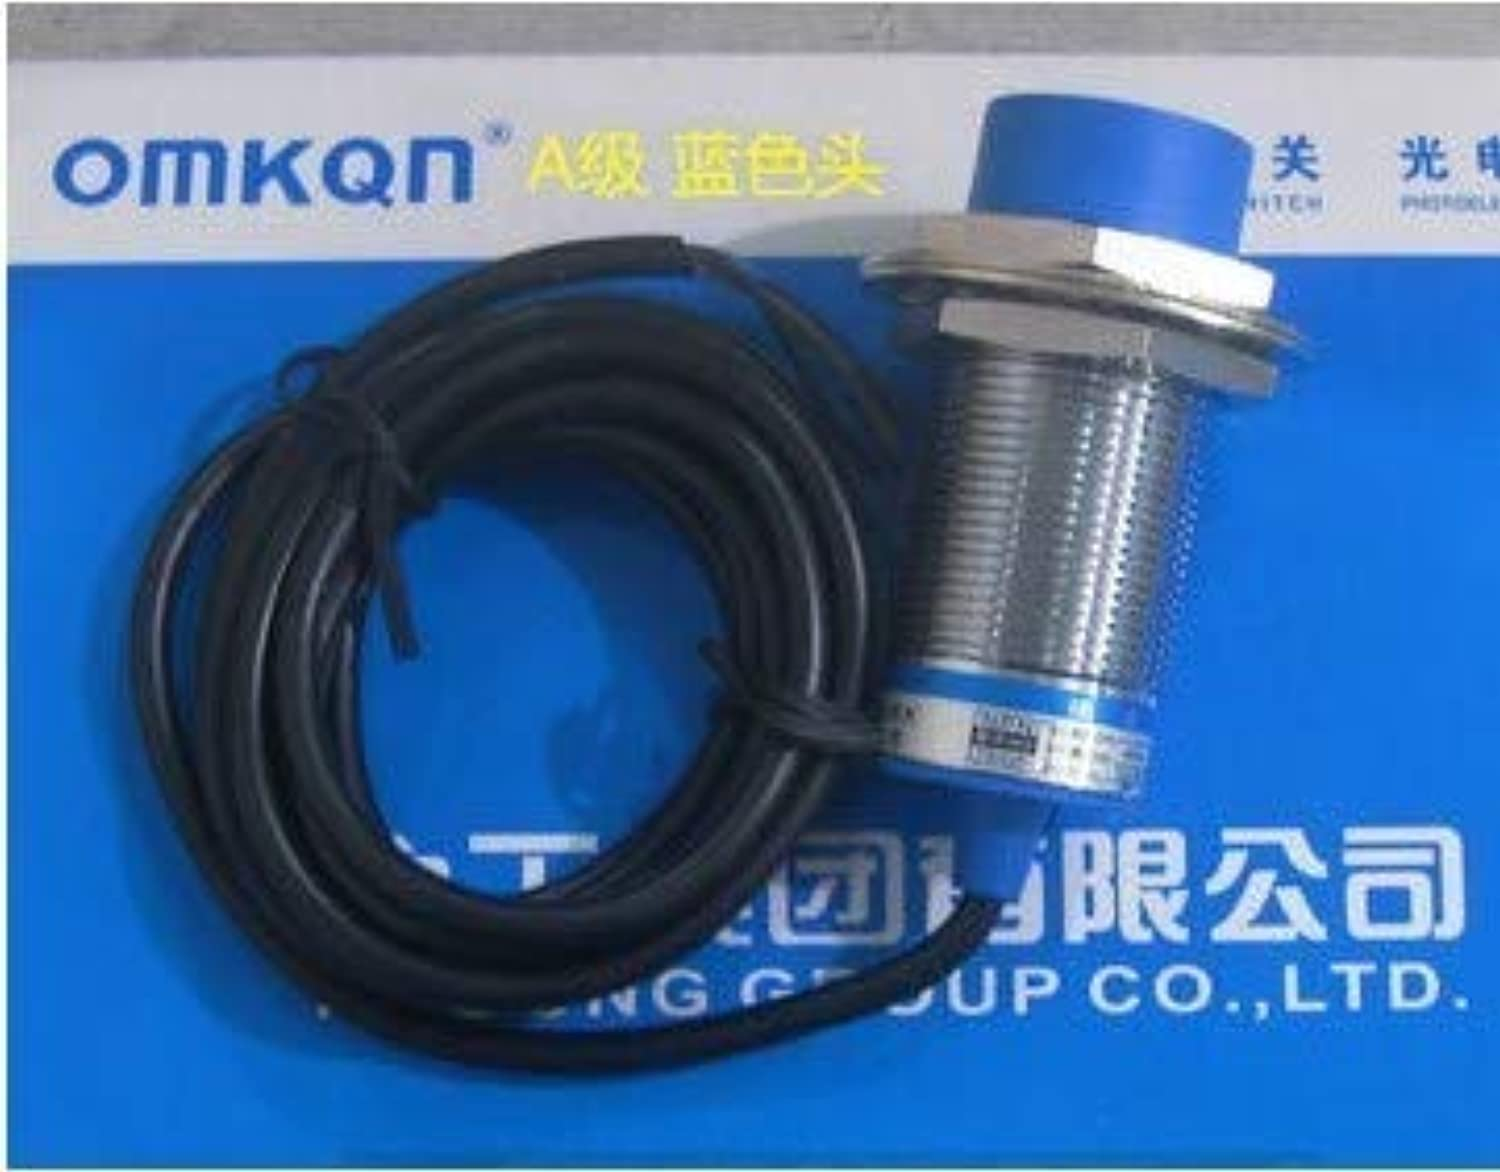 Inductance Type Near Switch LJ30A3-15-J EZ Communication Second Line-an Advisory Post Normally Open M30 Proximity Switch